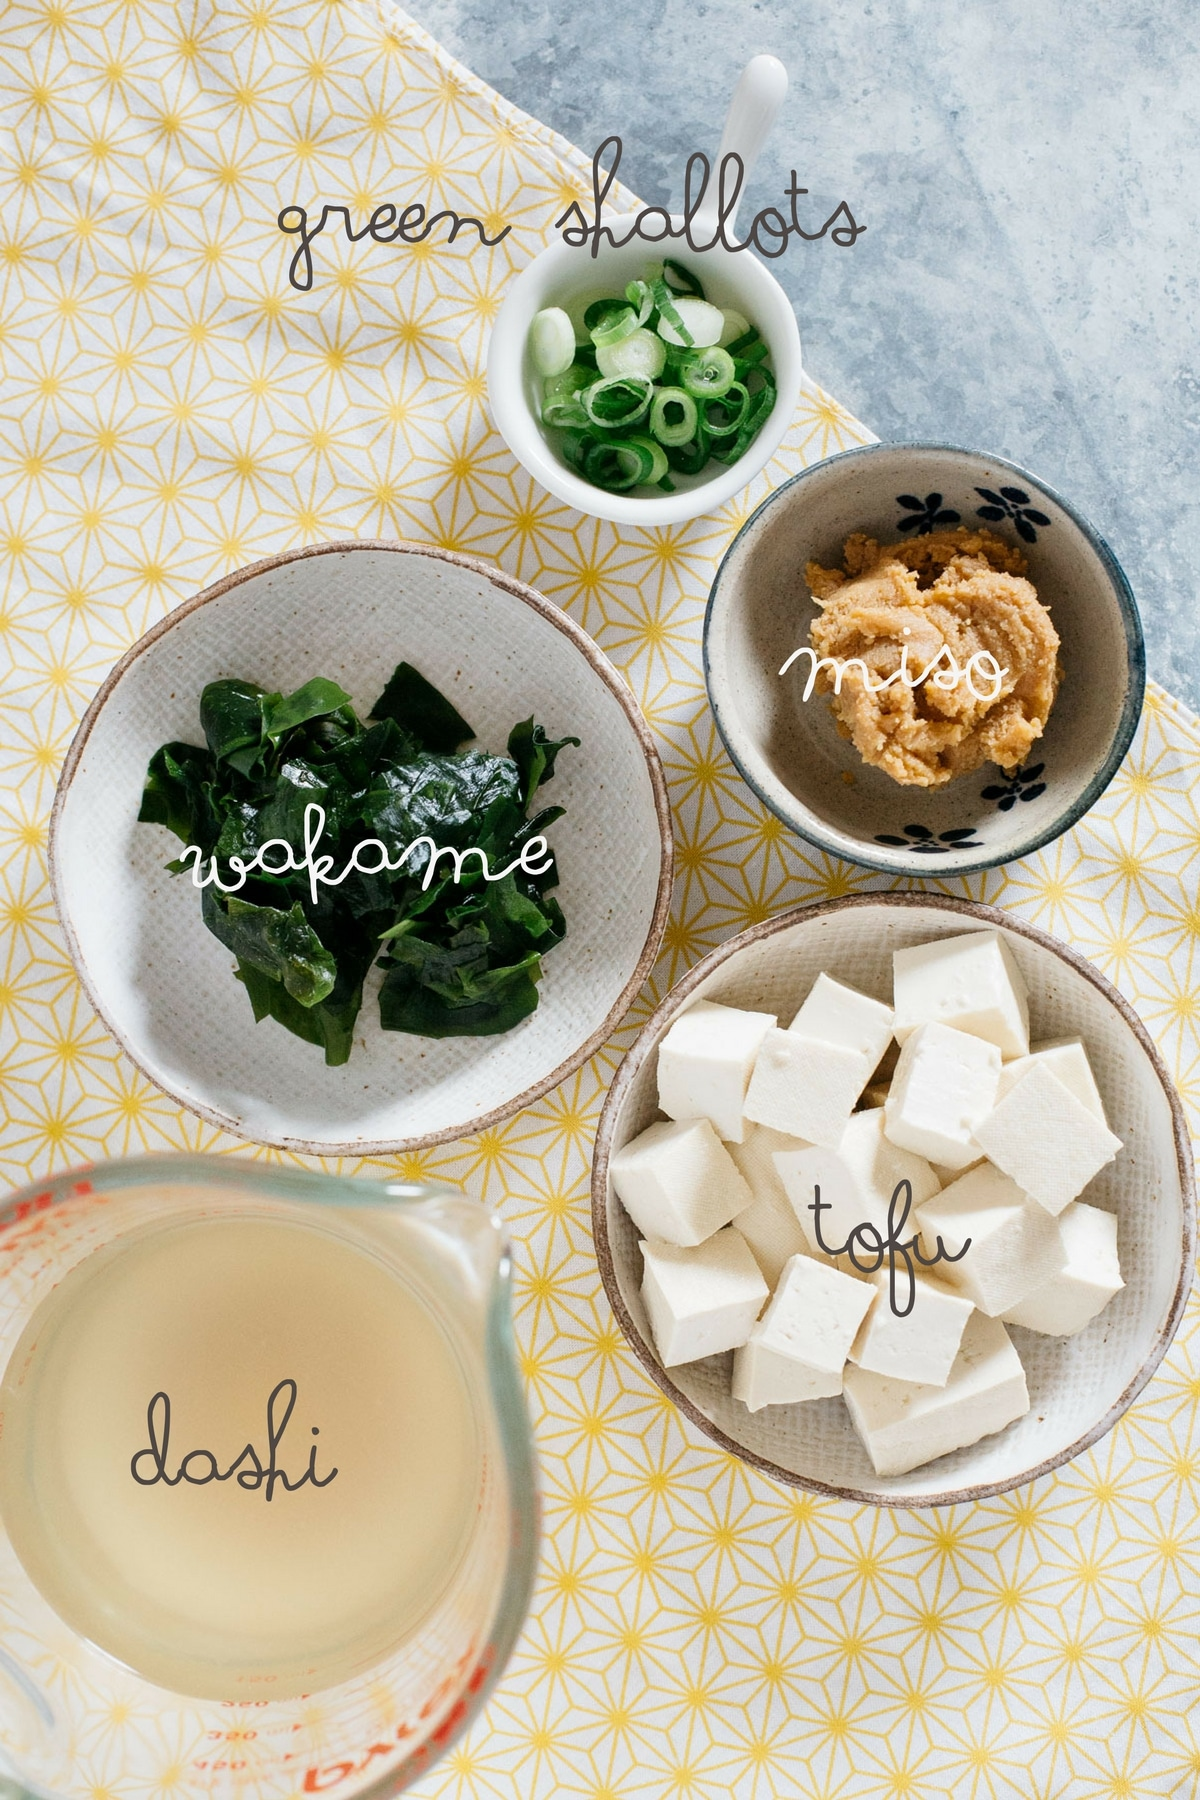 Japanese miso soup ingredients:dashi, miso, tofu, wakame, and green shallots in bowls